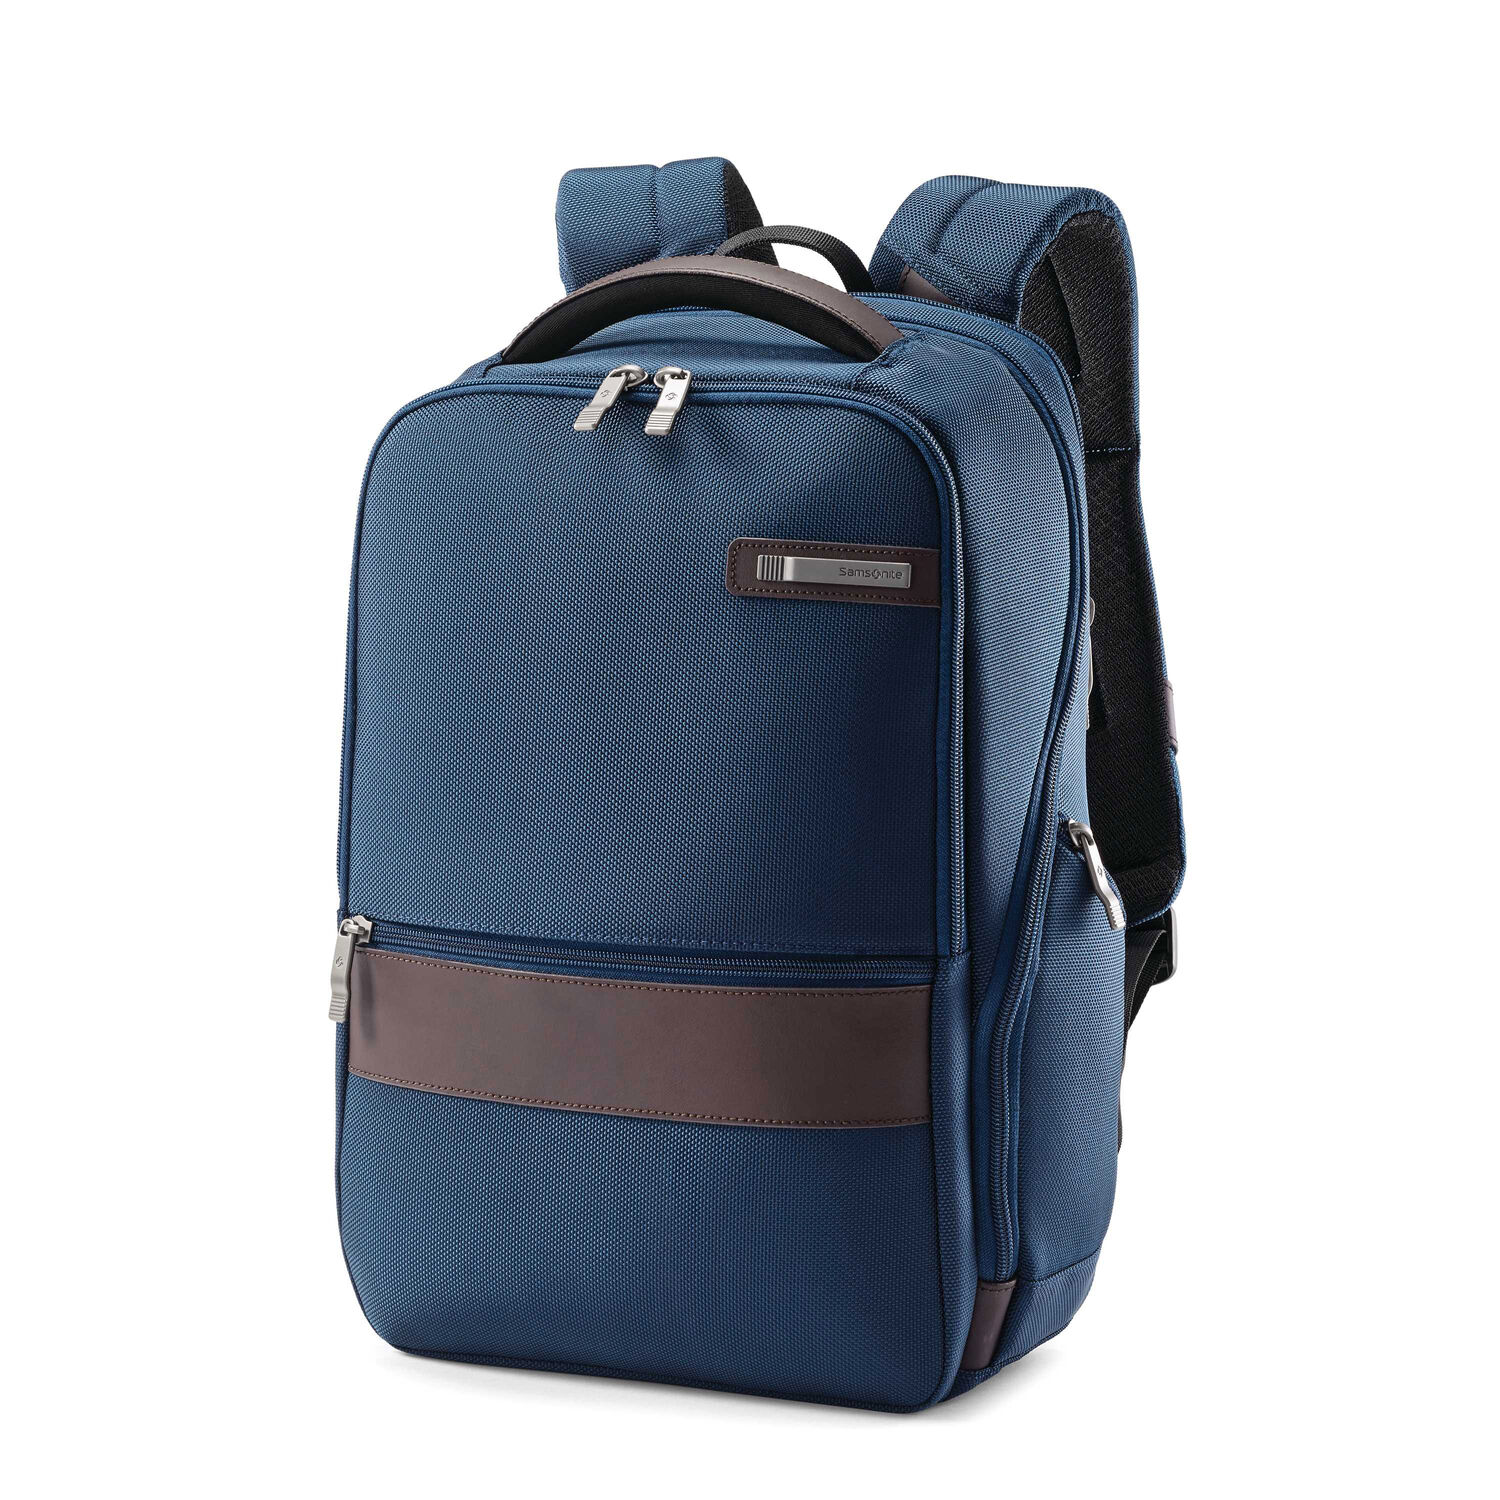 Samsonite Kombi Small Backpack In The Color Legion Blue